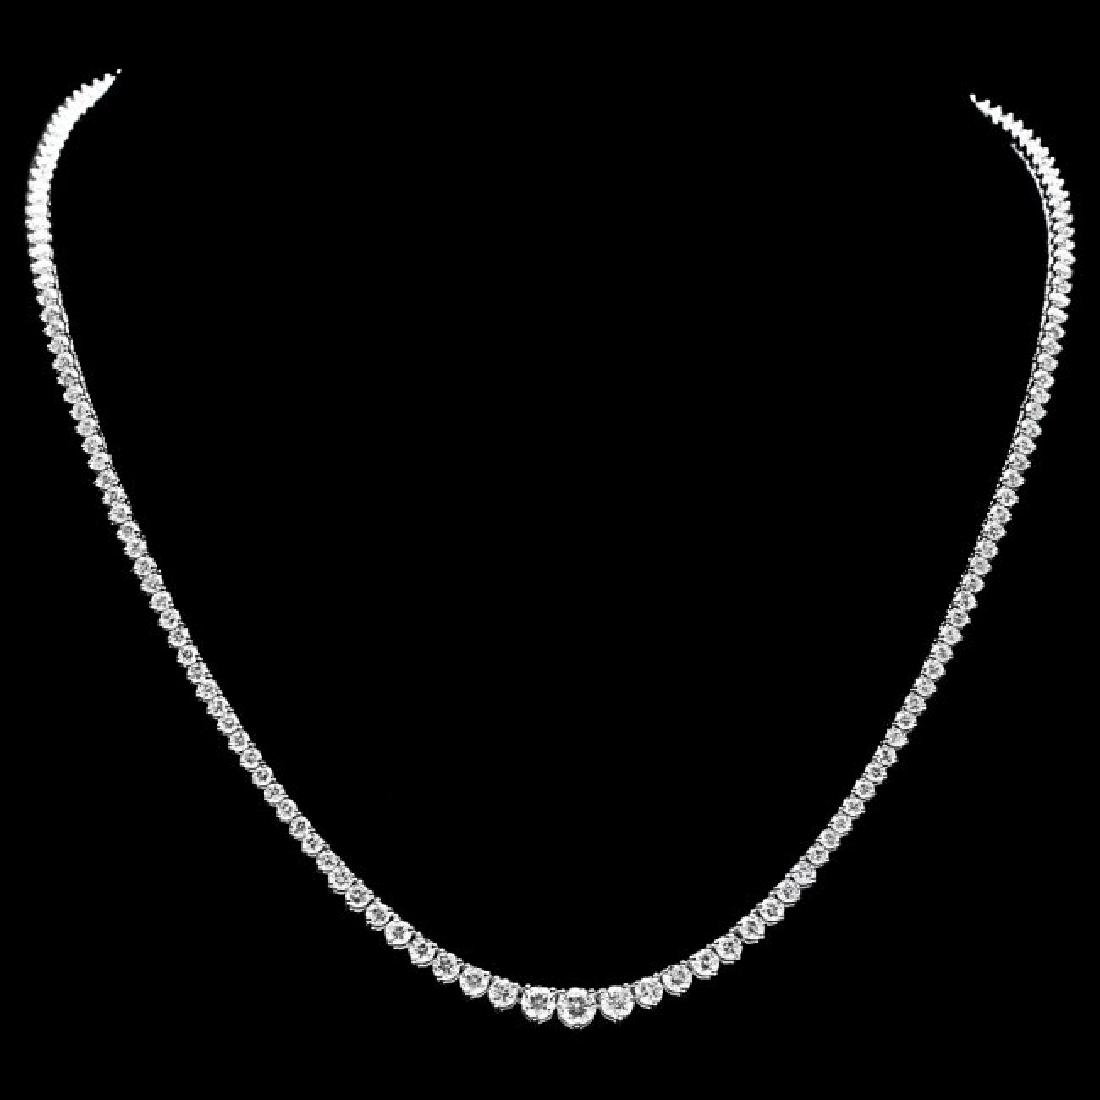 18k White Gold 9.00ct Diamond Necklace